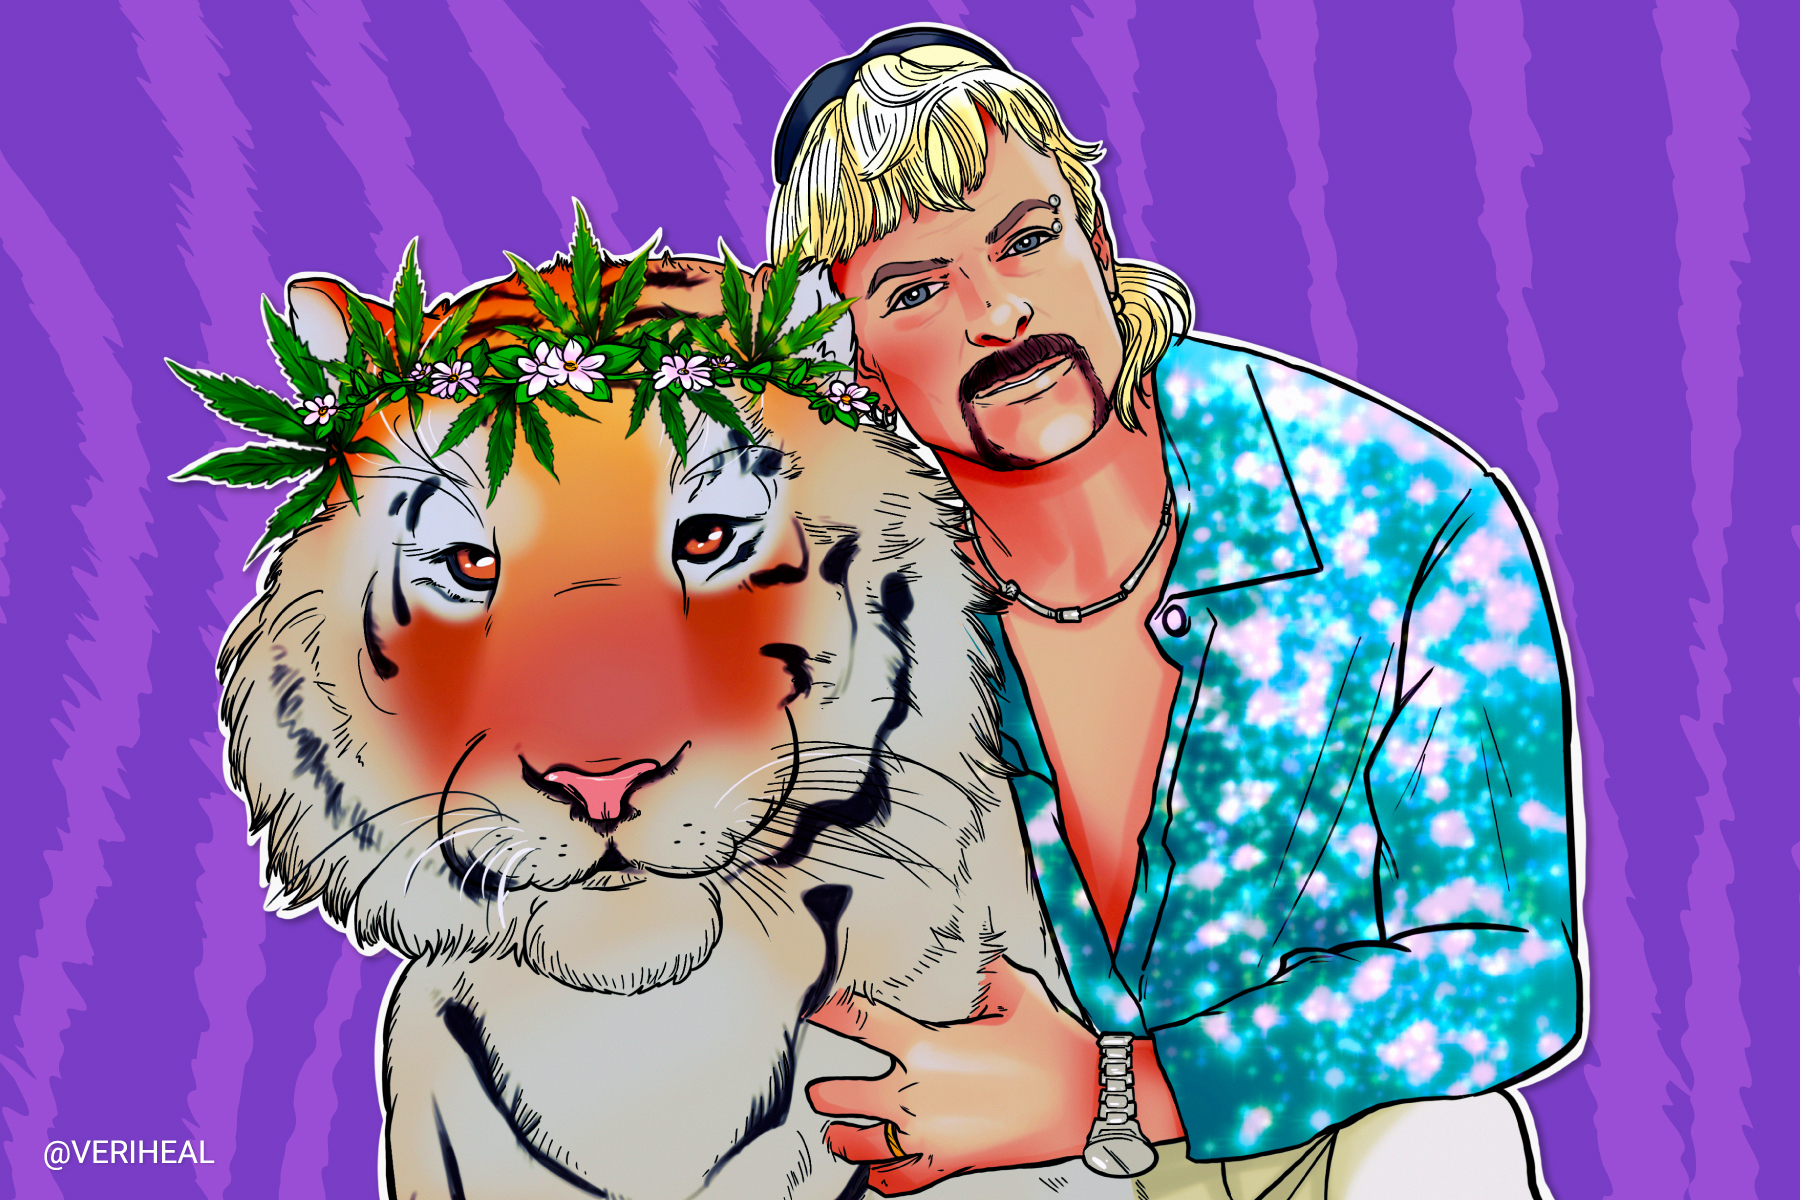 Joe Exotic is Releasing His Own Cannabis Brand Out of Prison